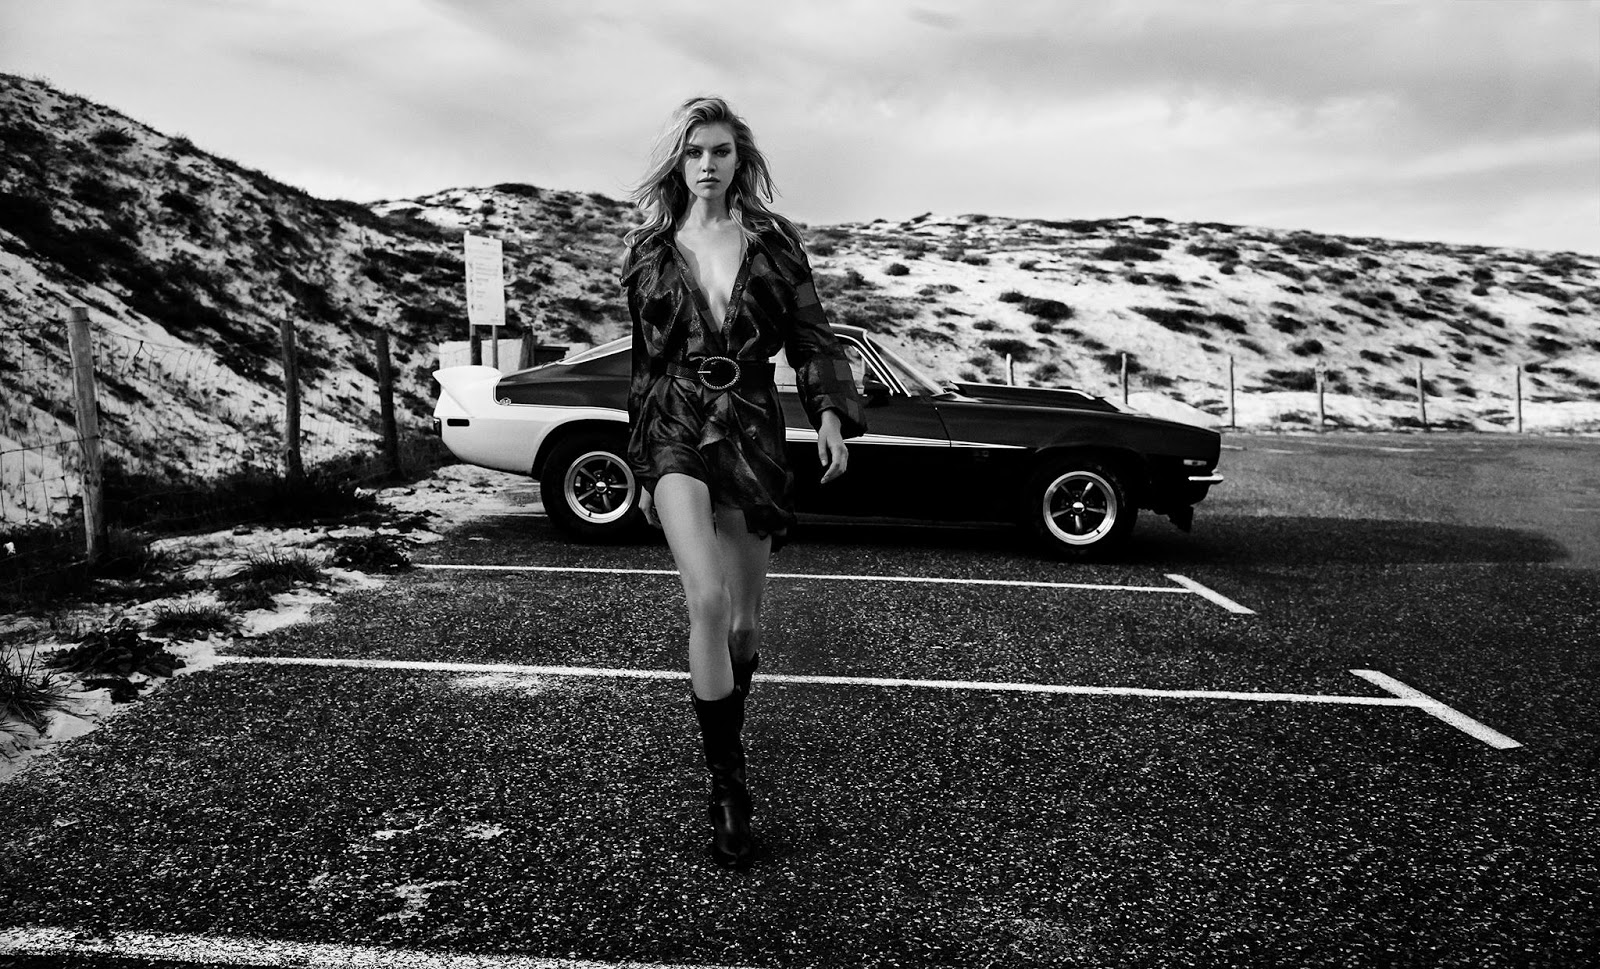 Redemption Spring Summer 2018 Campaign starring Stella Maxwell